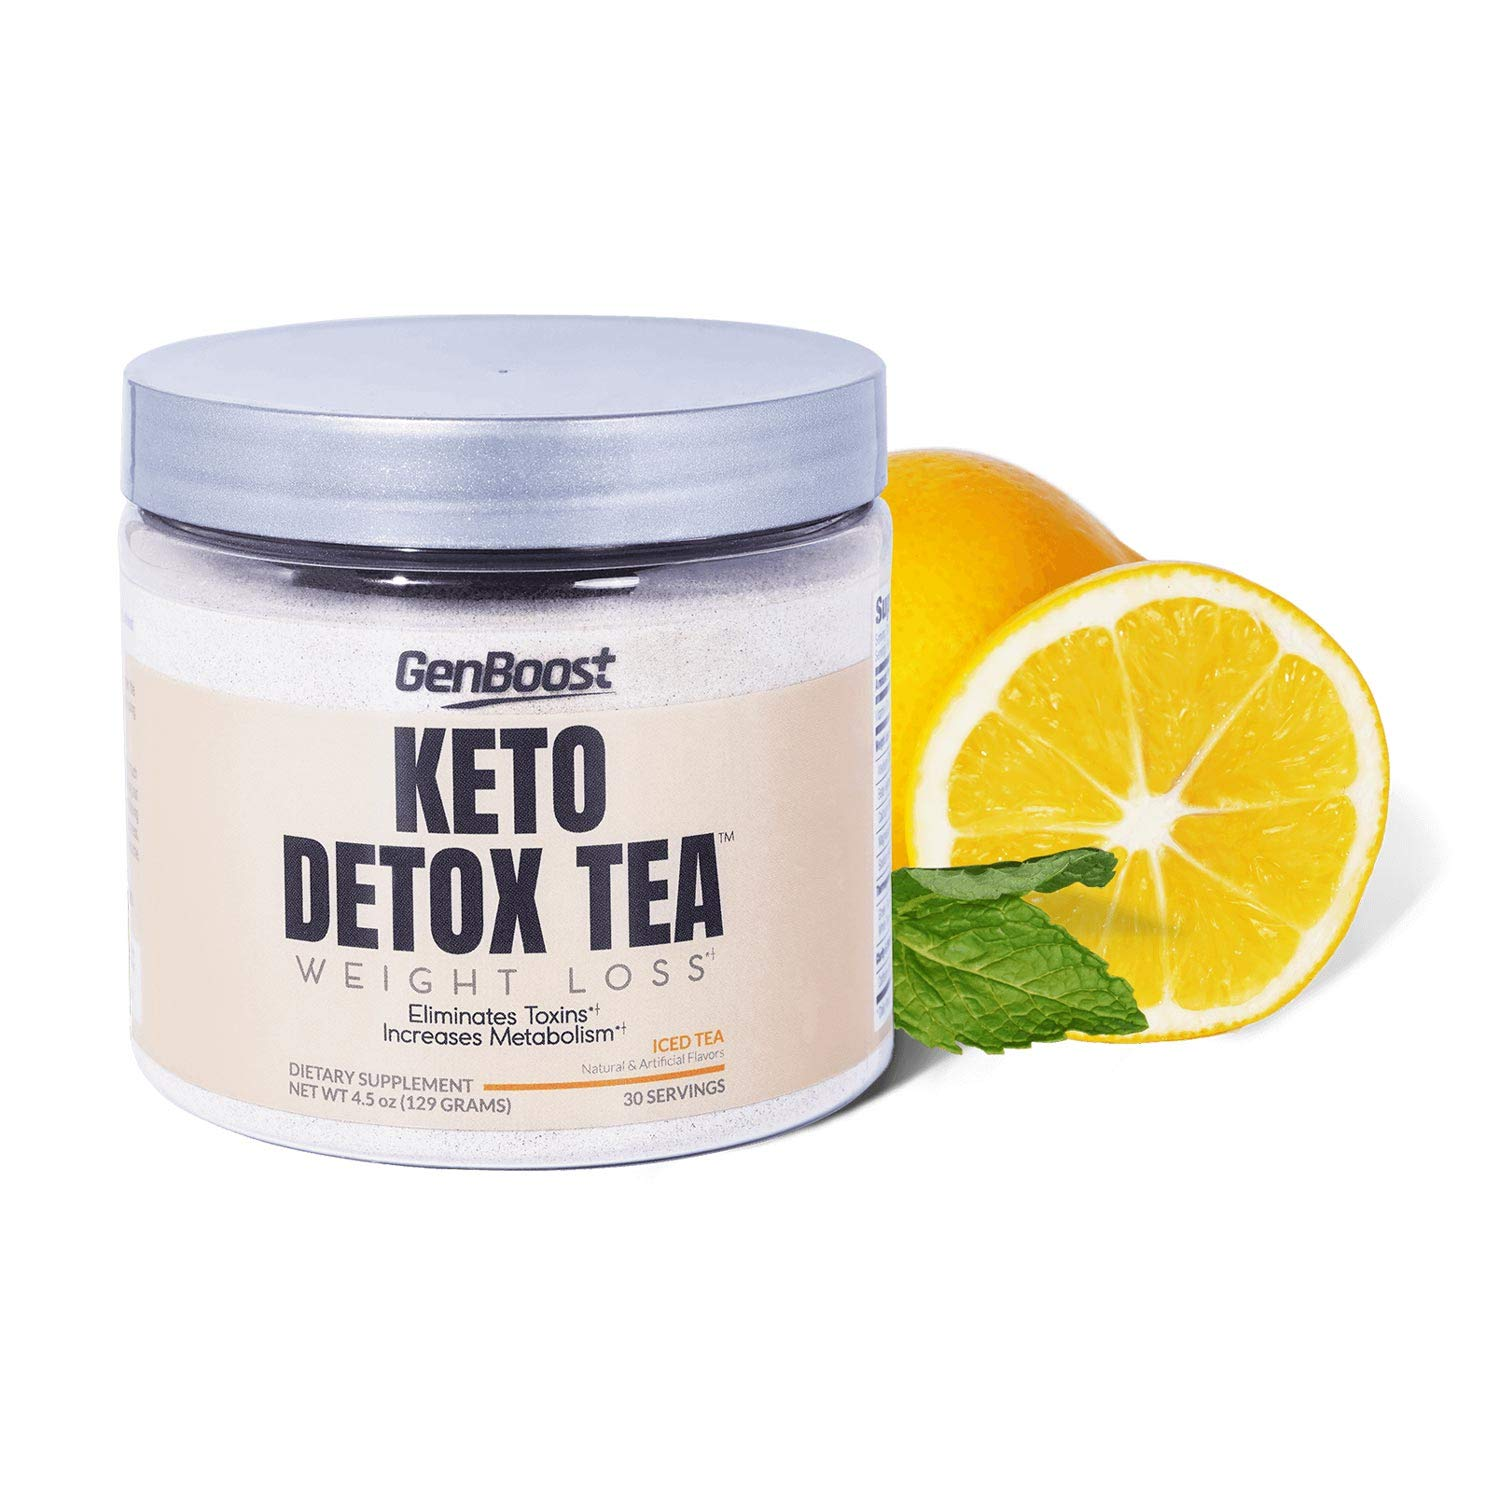 Keto Detox Tea Weight Loss - Exogenous Ketones/Keto & Paleo Diet Friendly - Powdered Iced Tea Support Metabolism & Cleanse & Ketosis - Green, Black, White Tea Extracts & Beta-Hydroxybutyrate BHB Salt by GenBoost